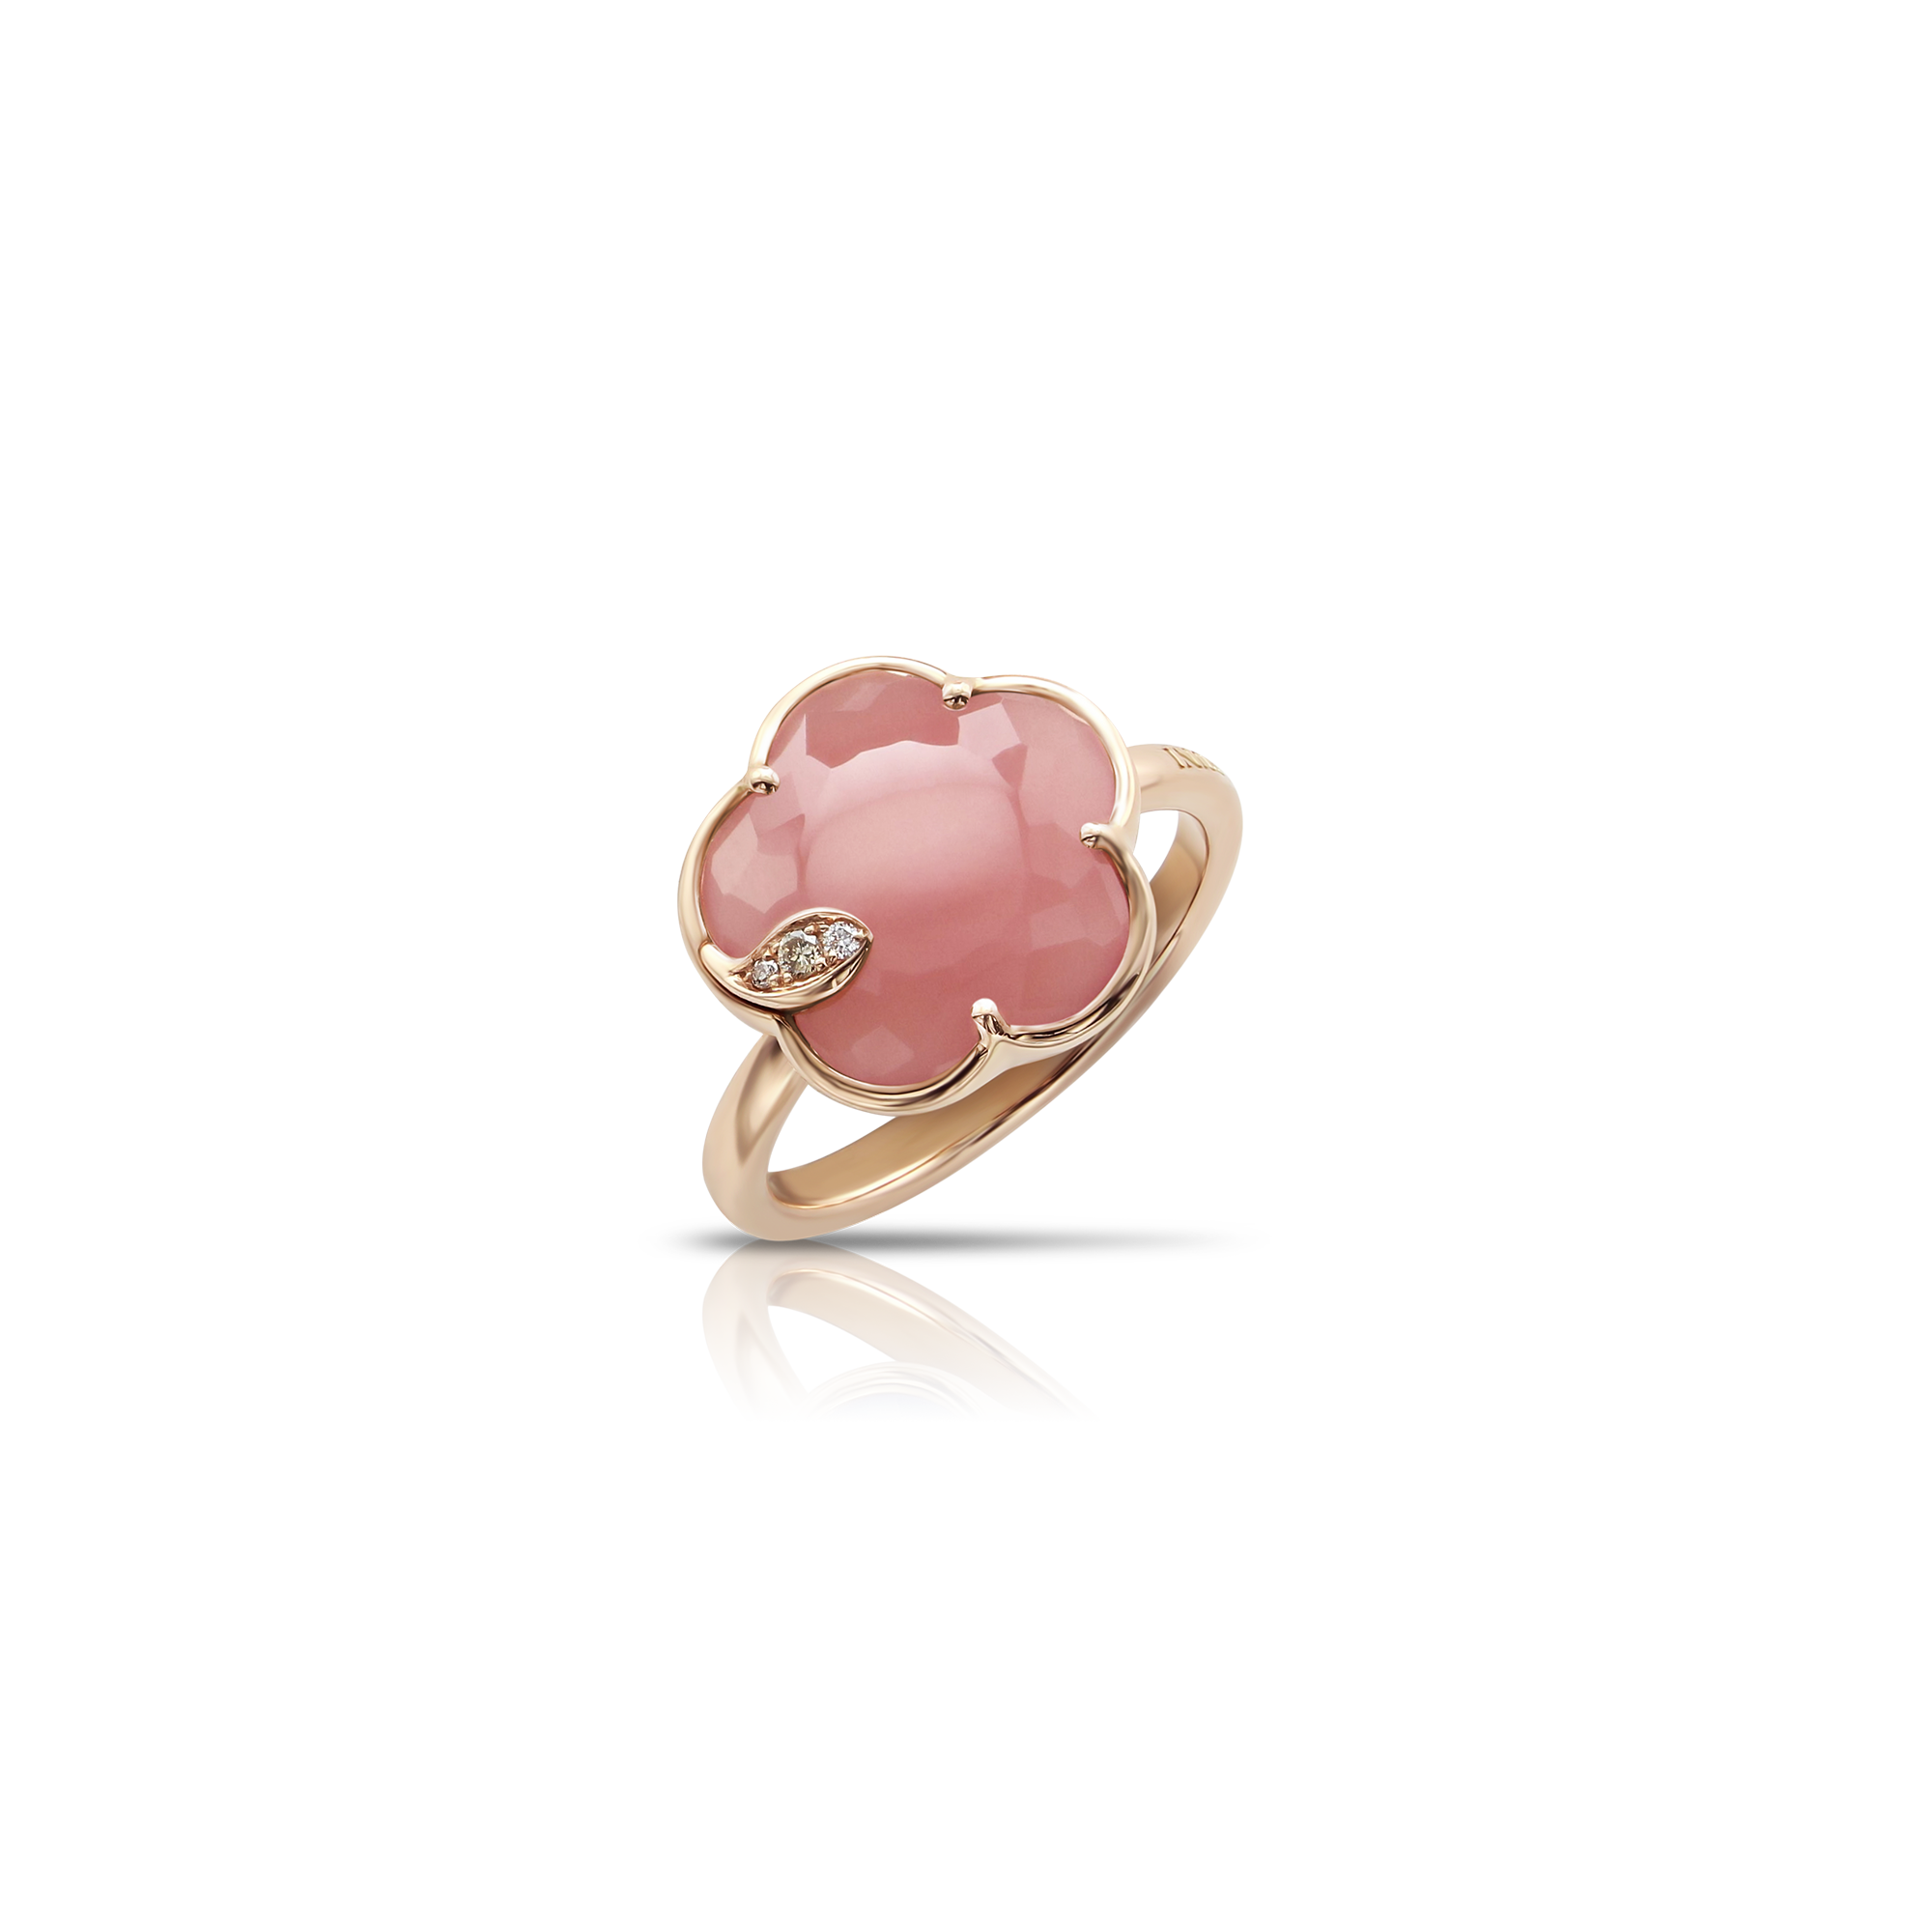 NEW 18k Rose Gold Petit Joli Ring with Pink Chalcedony, White and Champagne Diamonds